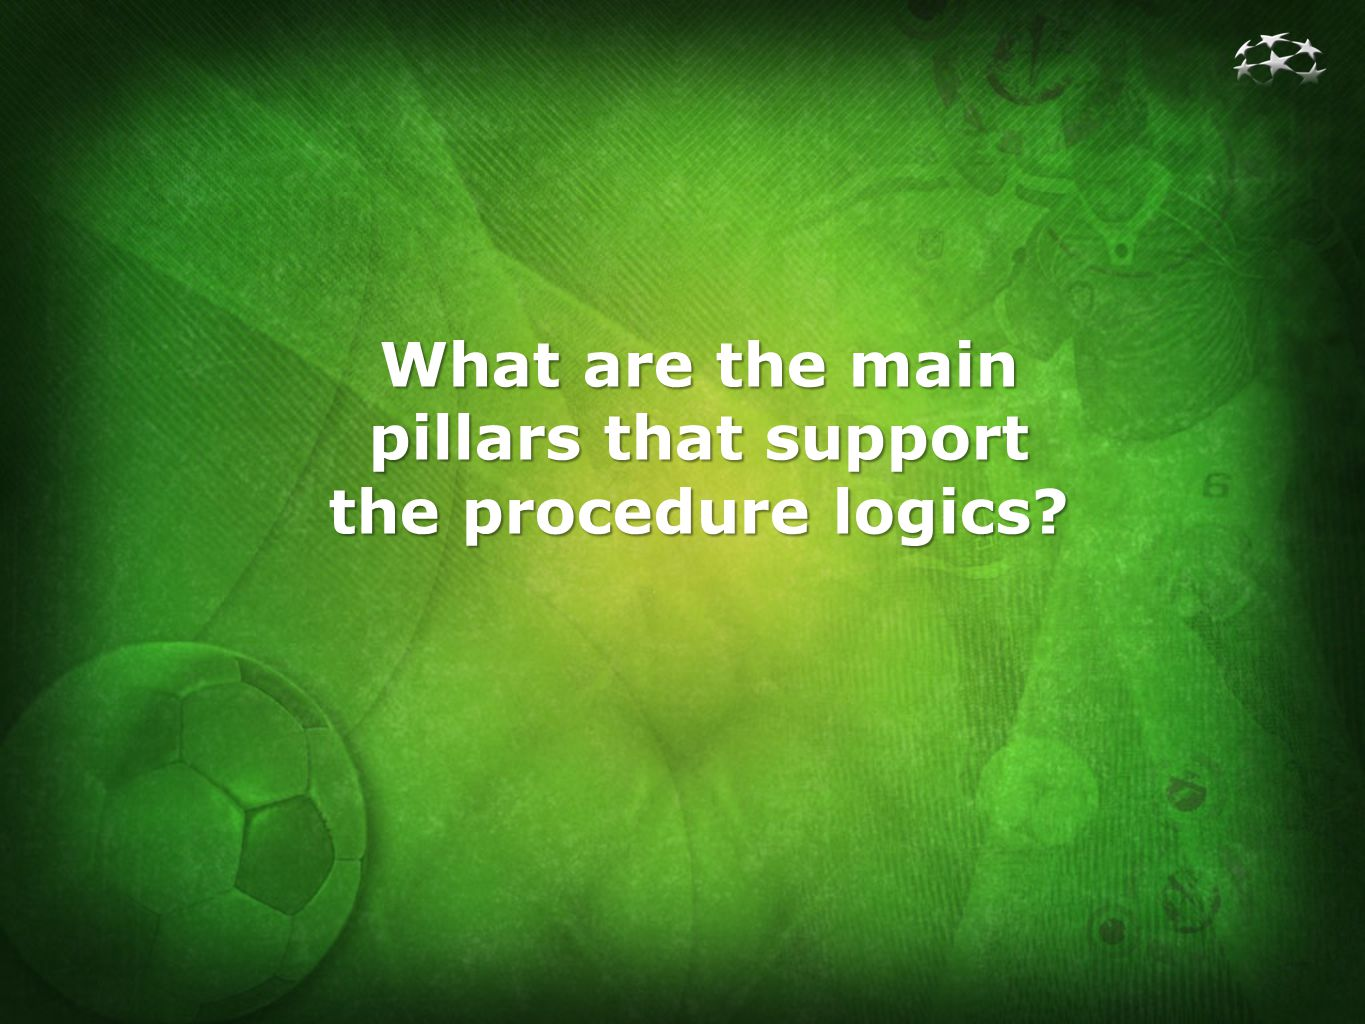 What are the main pillars that support the procedure logics?